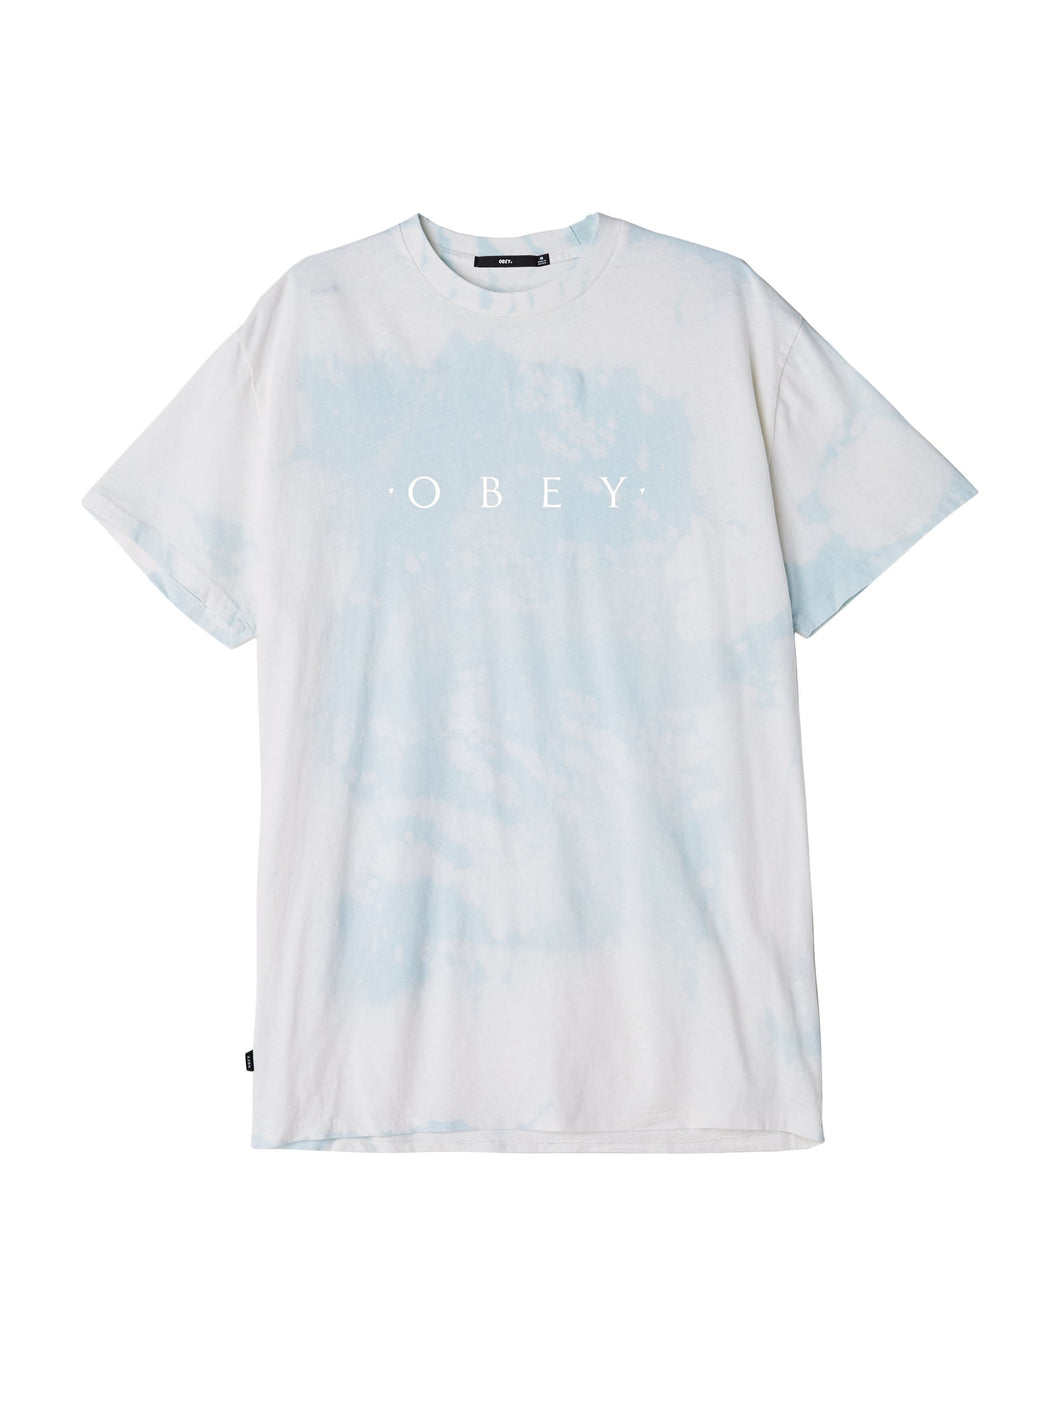 OBEY NOVEL OBEY // POWDER BLUE